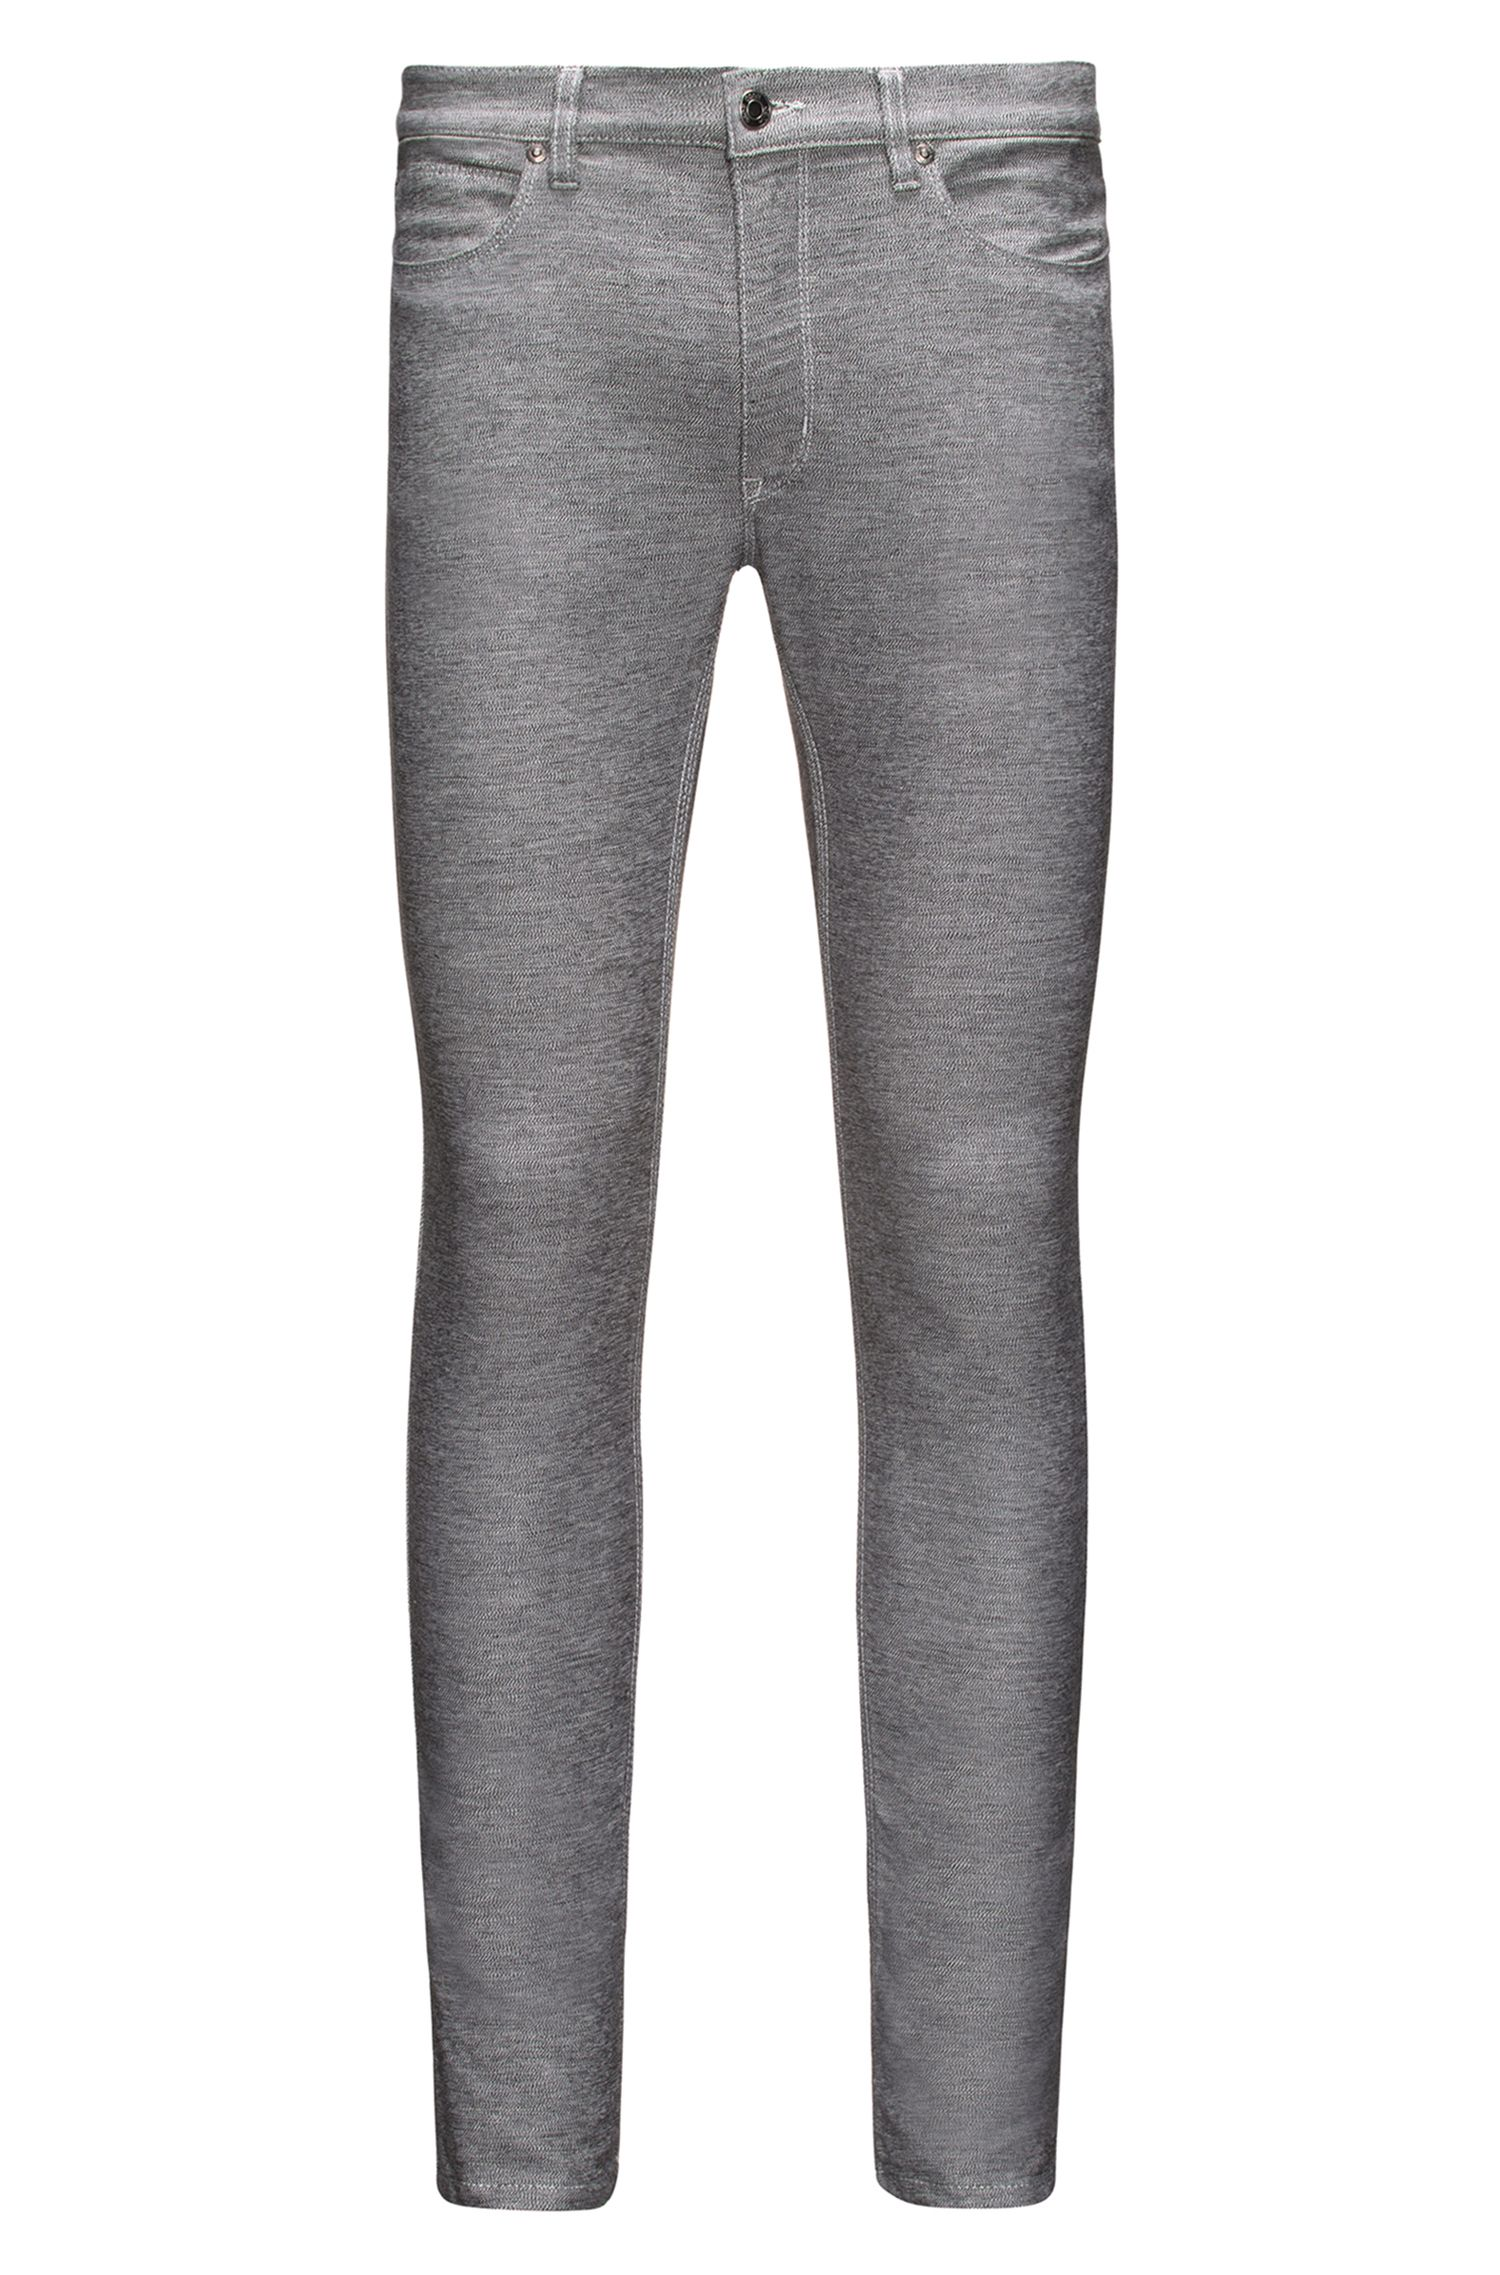 Skinny-fit jeans in dark-grey stretch jersey